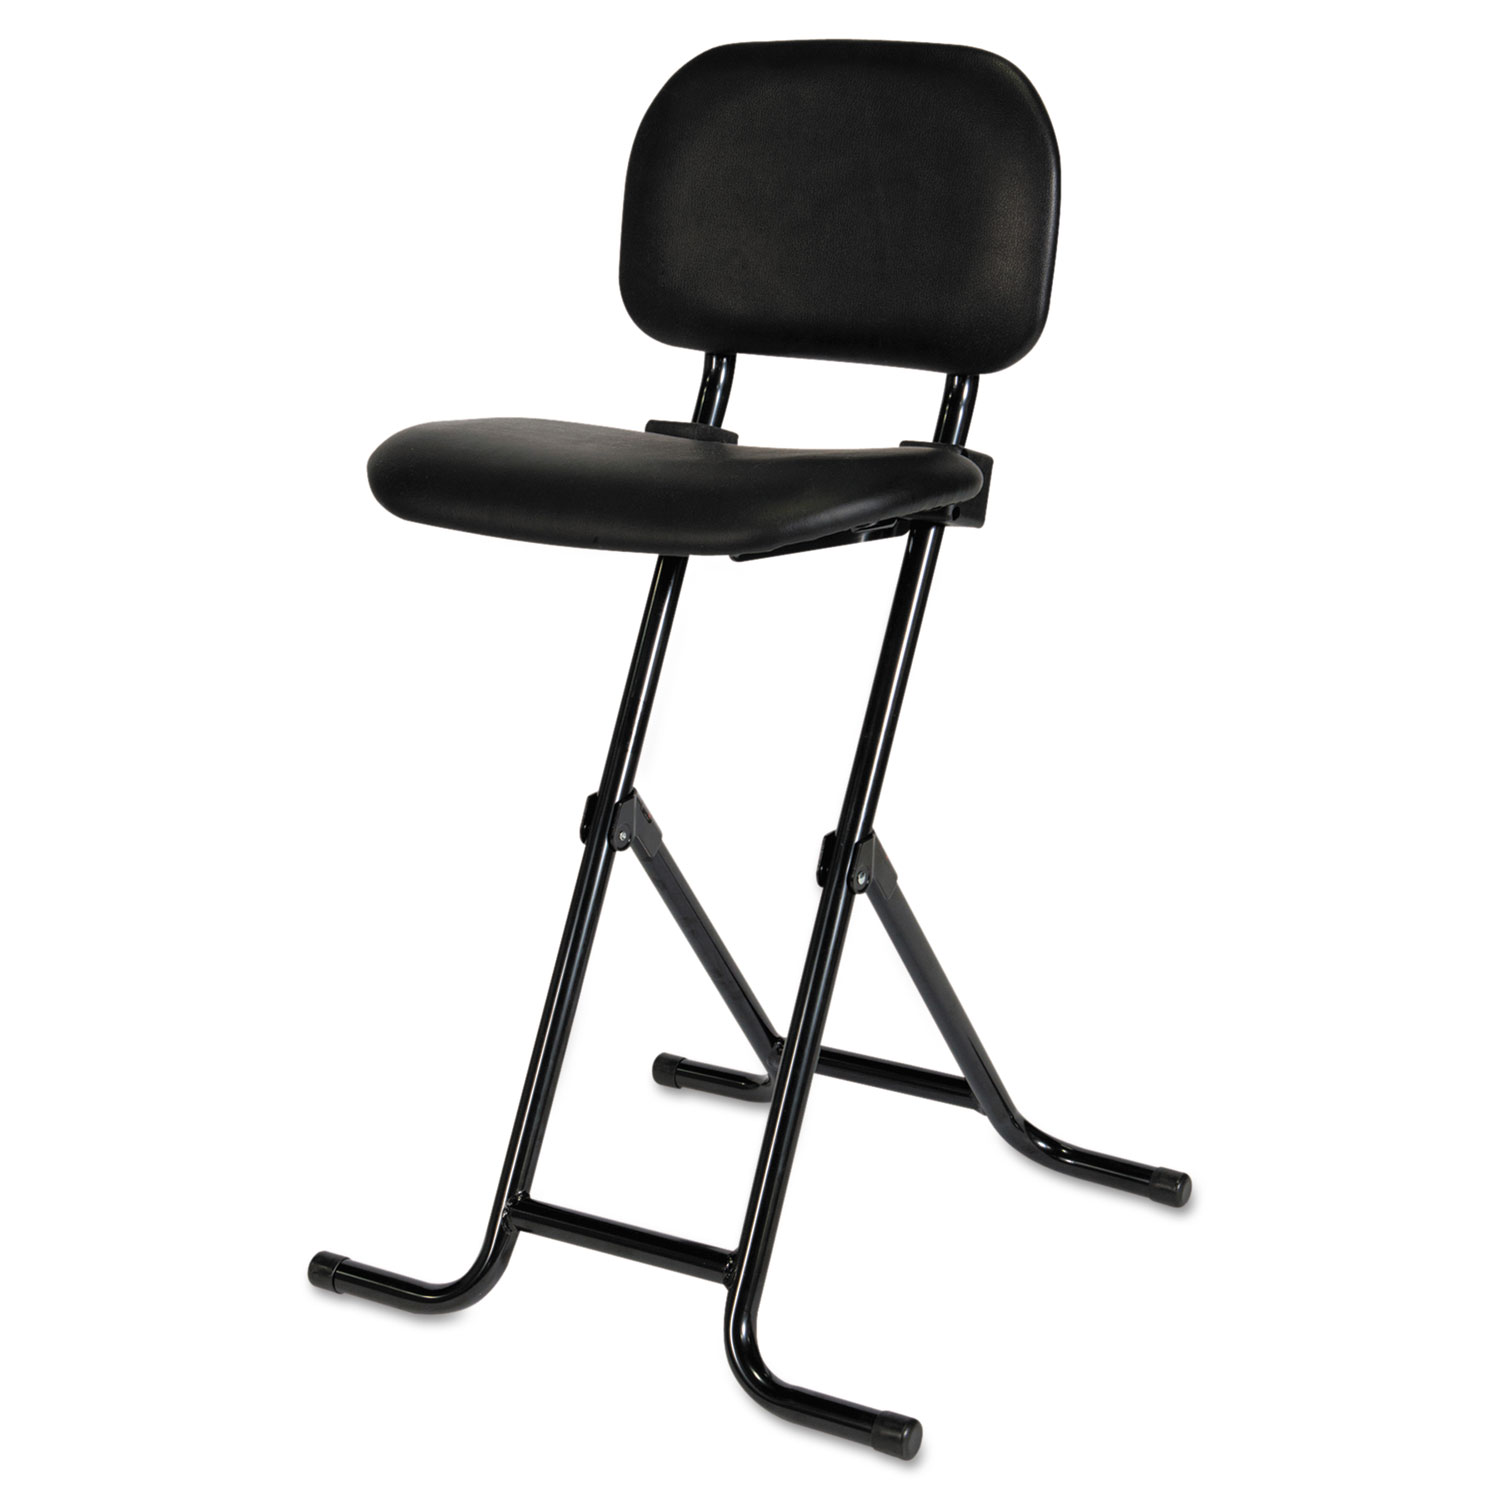 Sensational Alera Il Series Height Adjustable Folding Stool 27 5 Seat Cjindustries Chair Design For Home Cjindustriesco